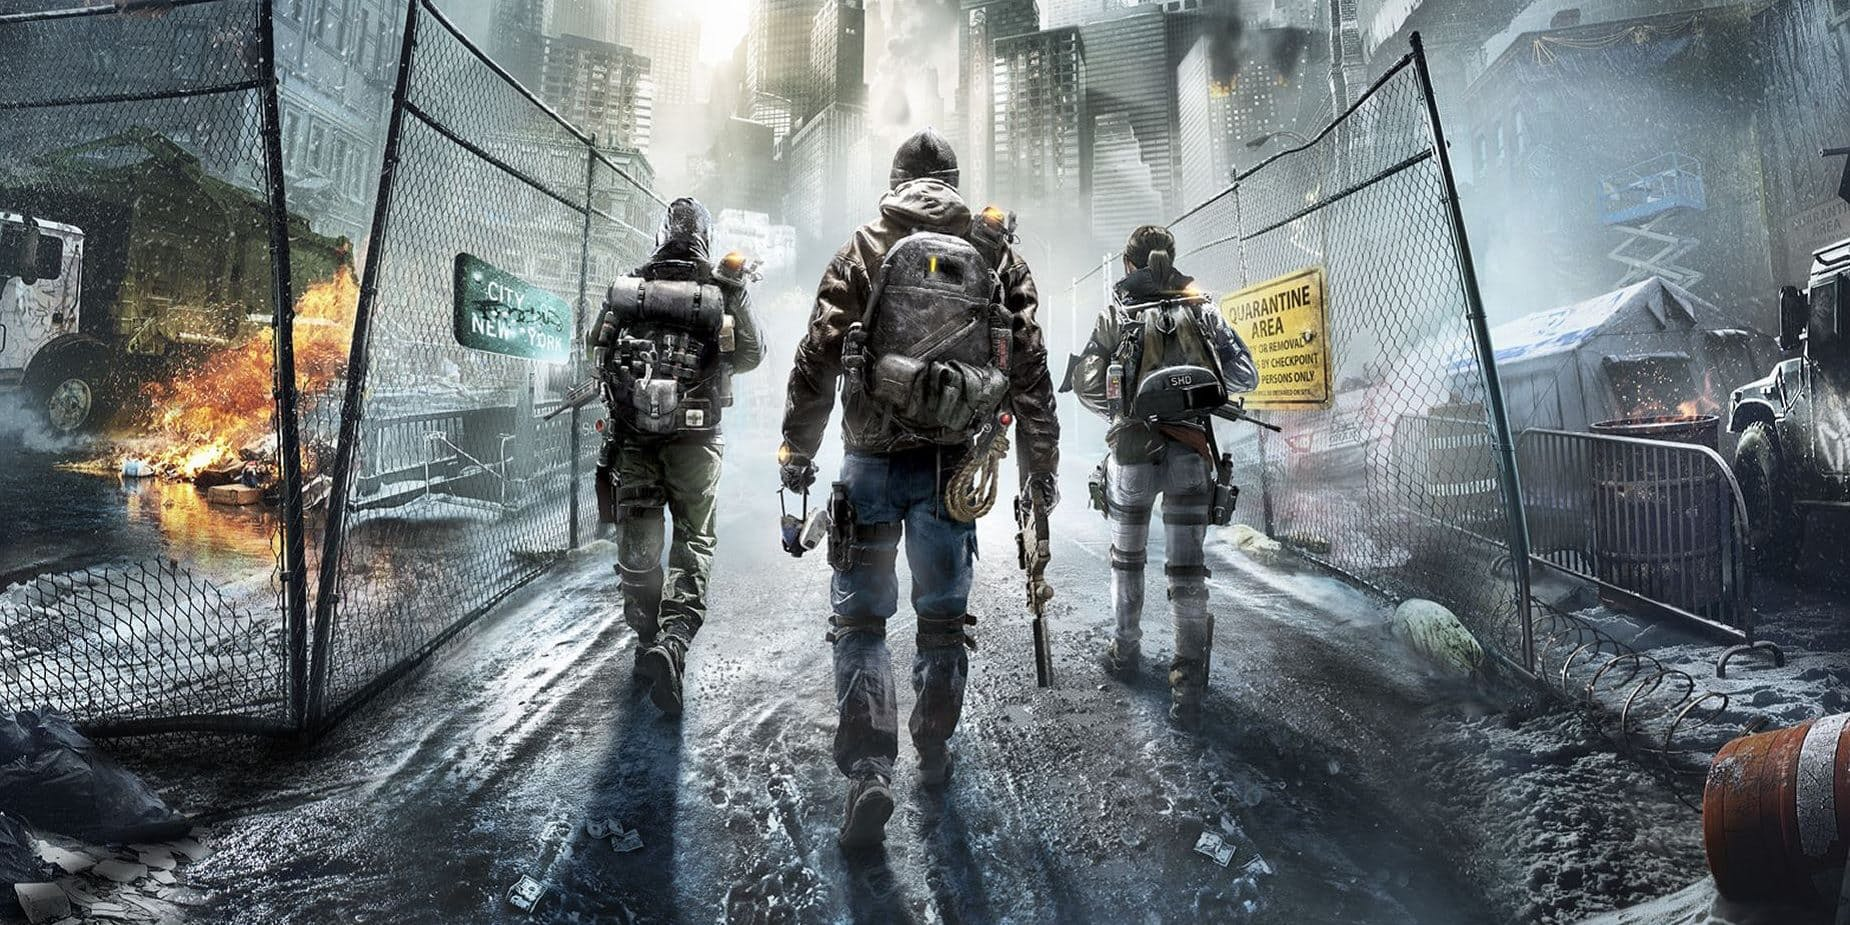 Division poster header The Division Video Game Movie Lands Gold Director Stephen Gaghan